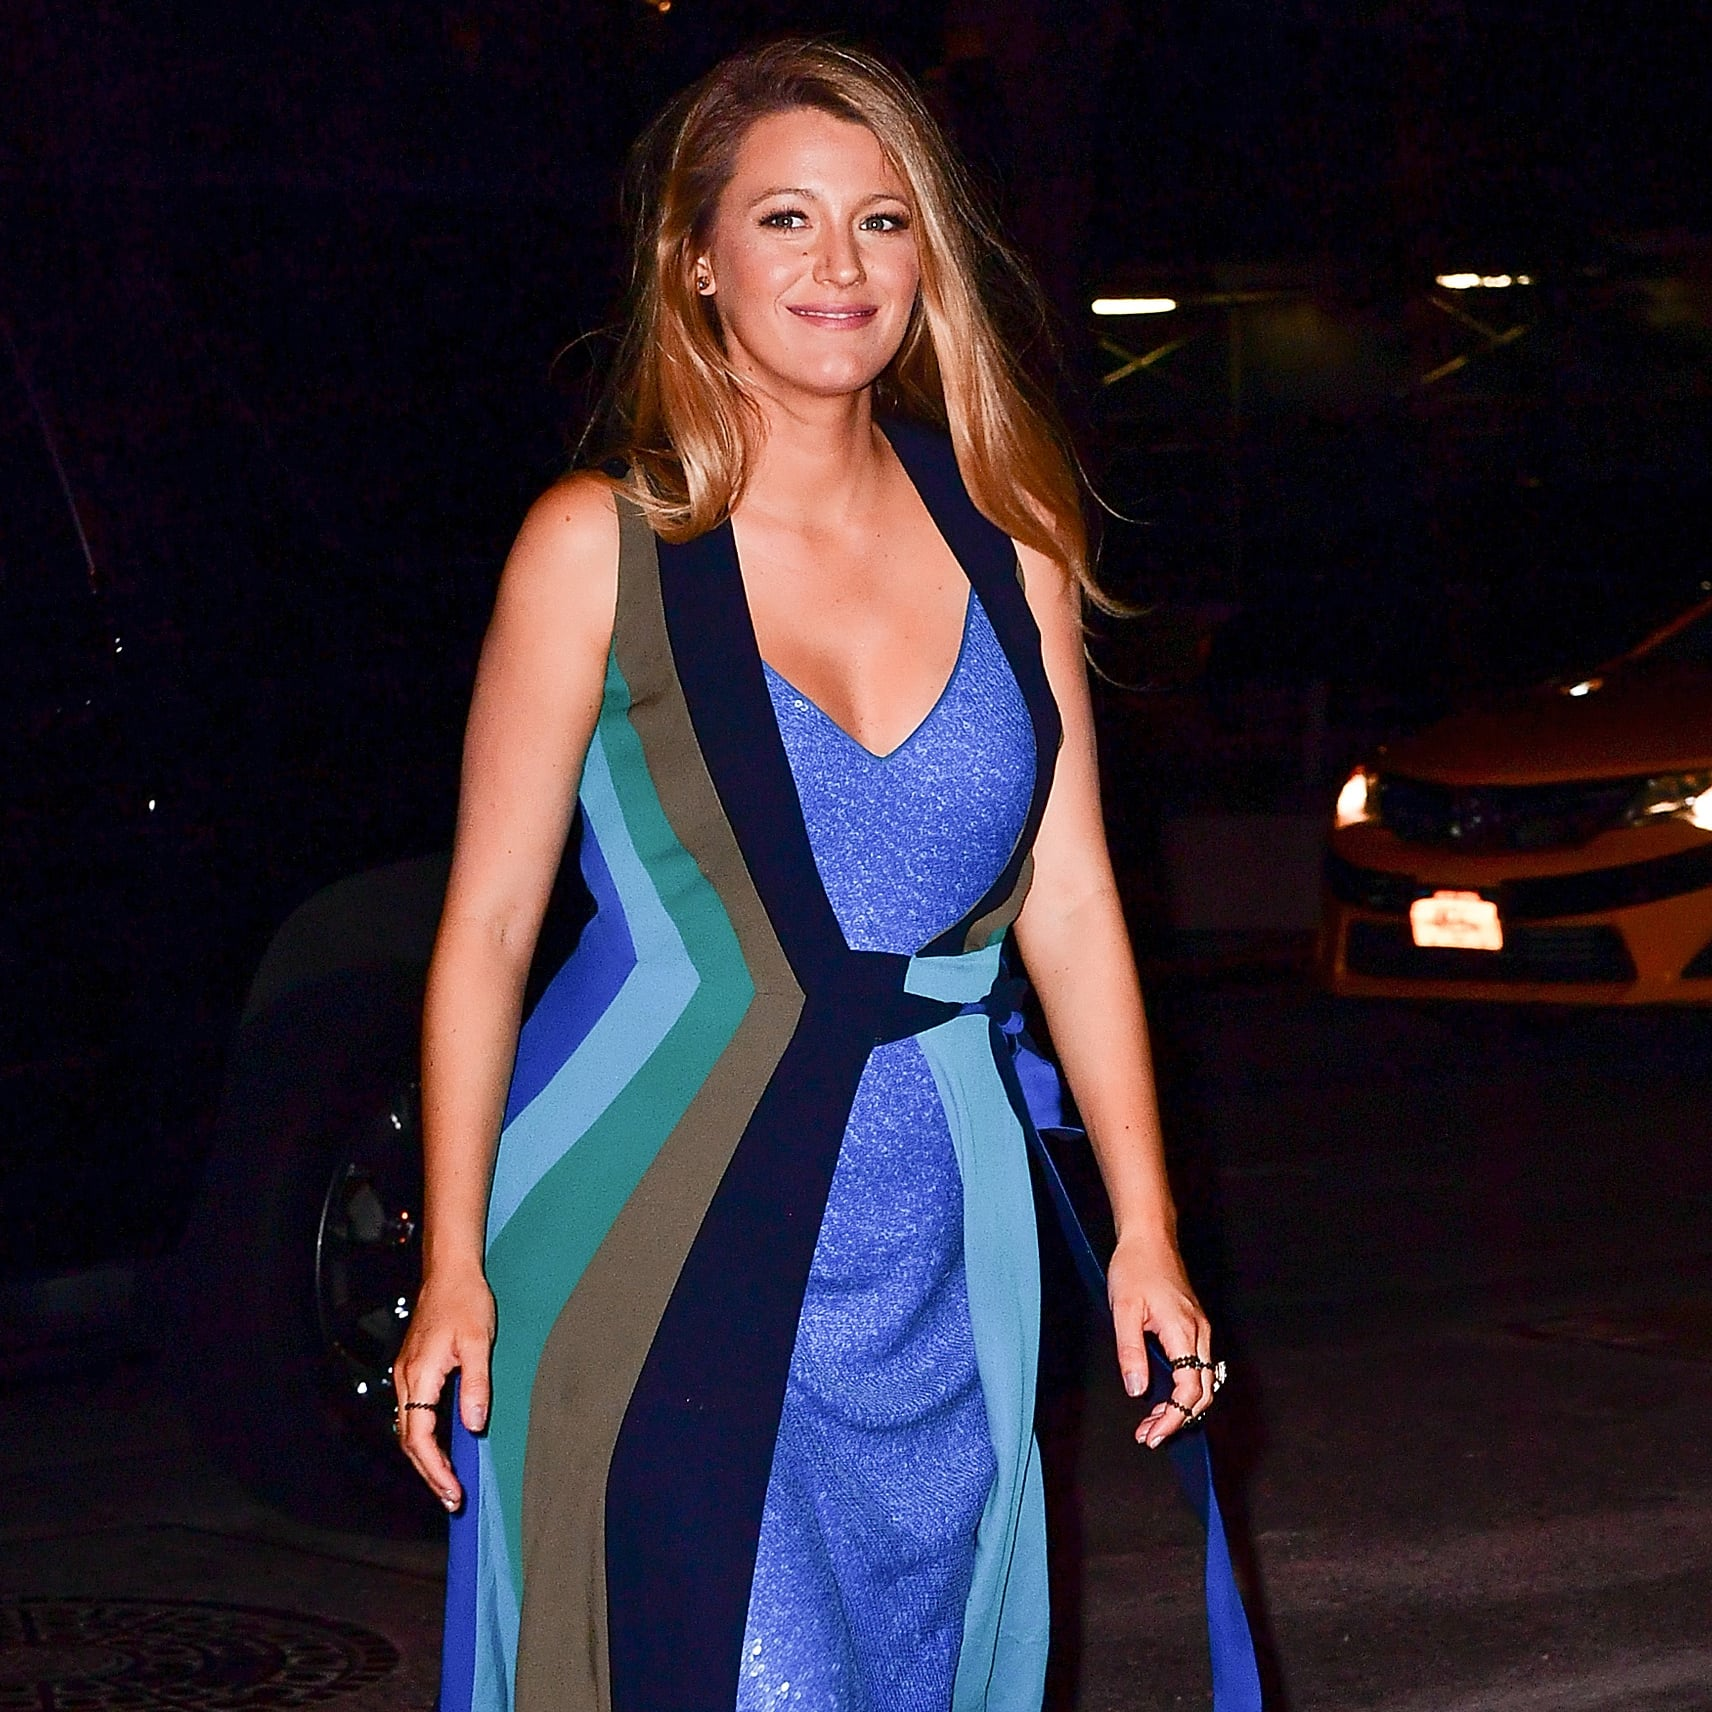 af021b92ef Blake Lively s DVF Dress July 2016